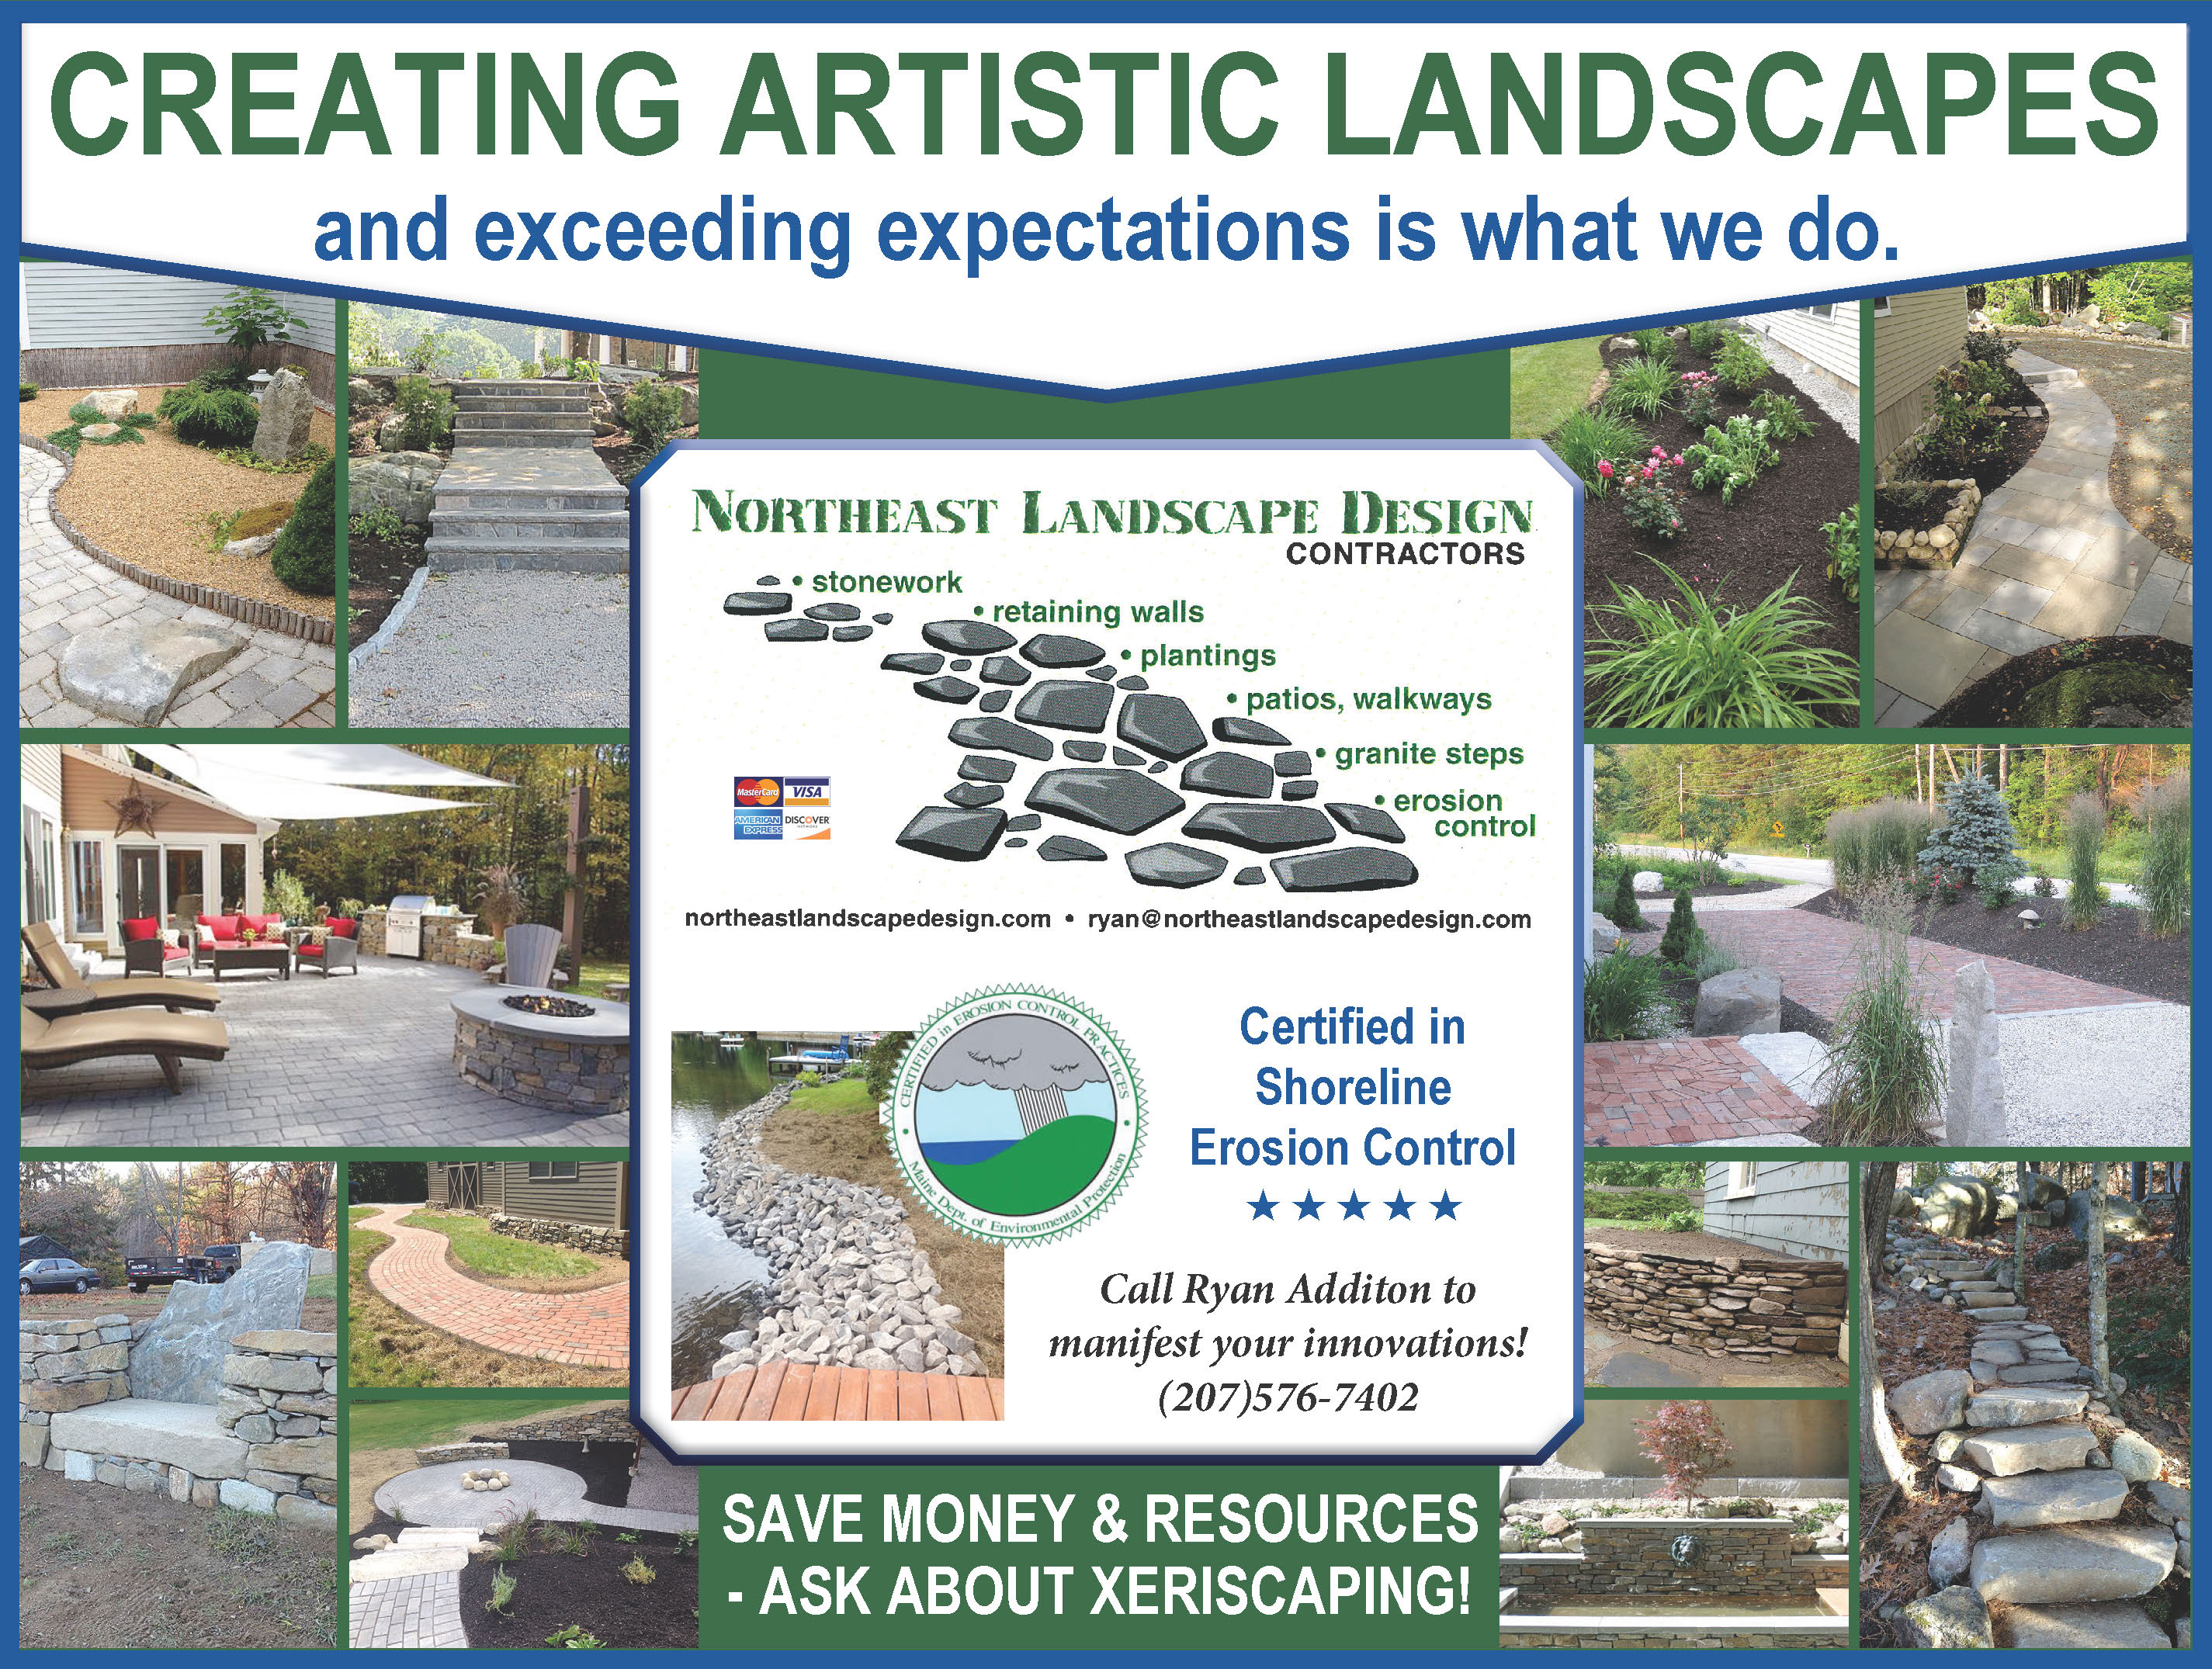 http://northeastlandscapedesign.com/